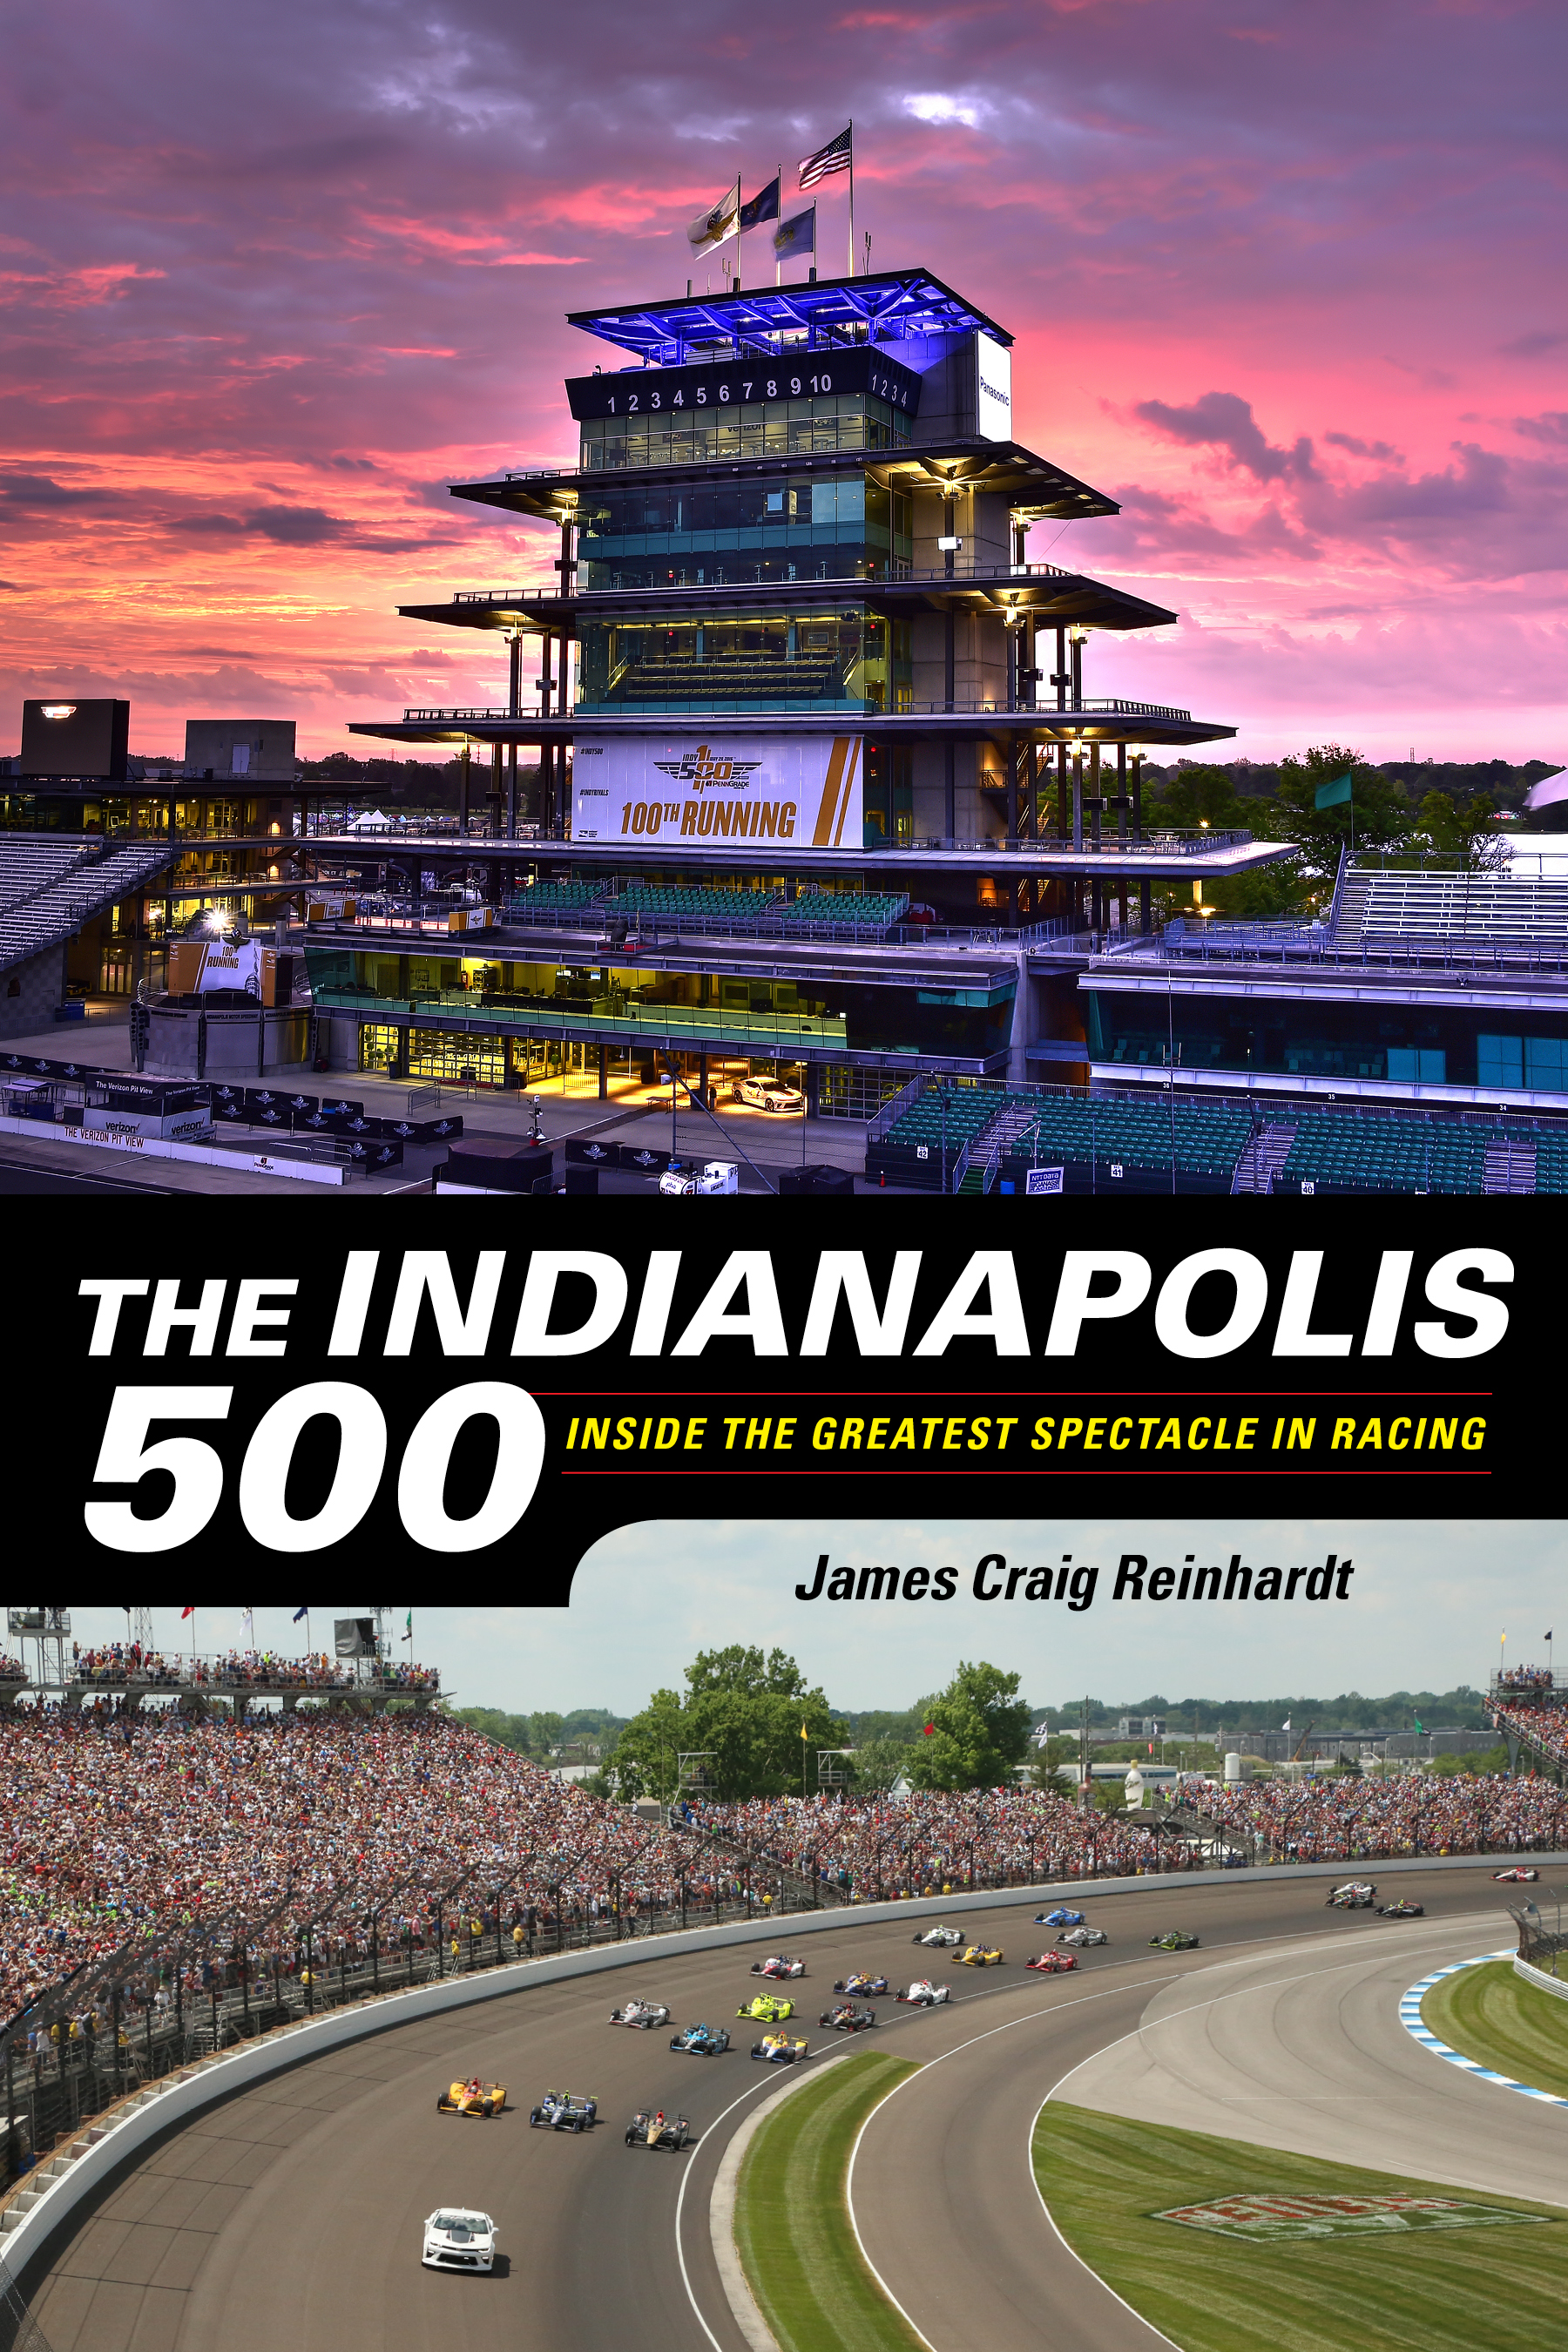 The Indianapolis 500 Inside the Greatest Spectacle in Racing